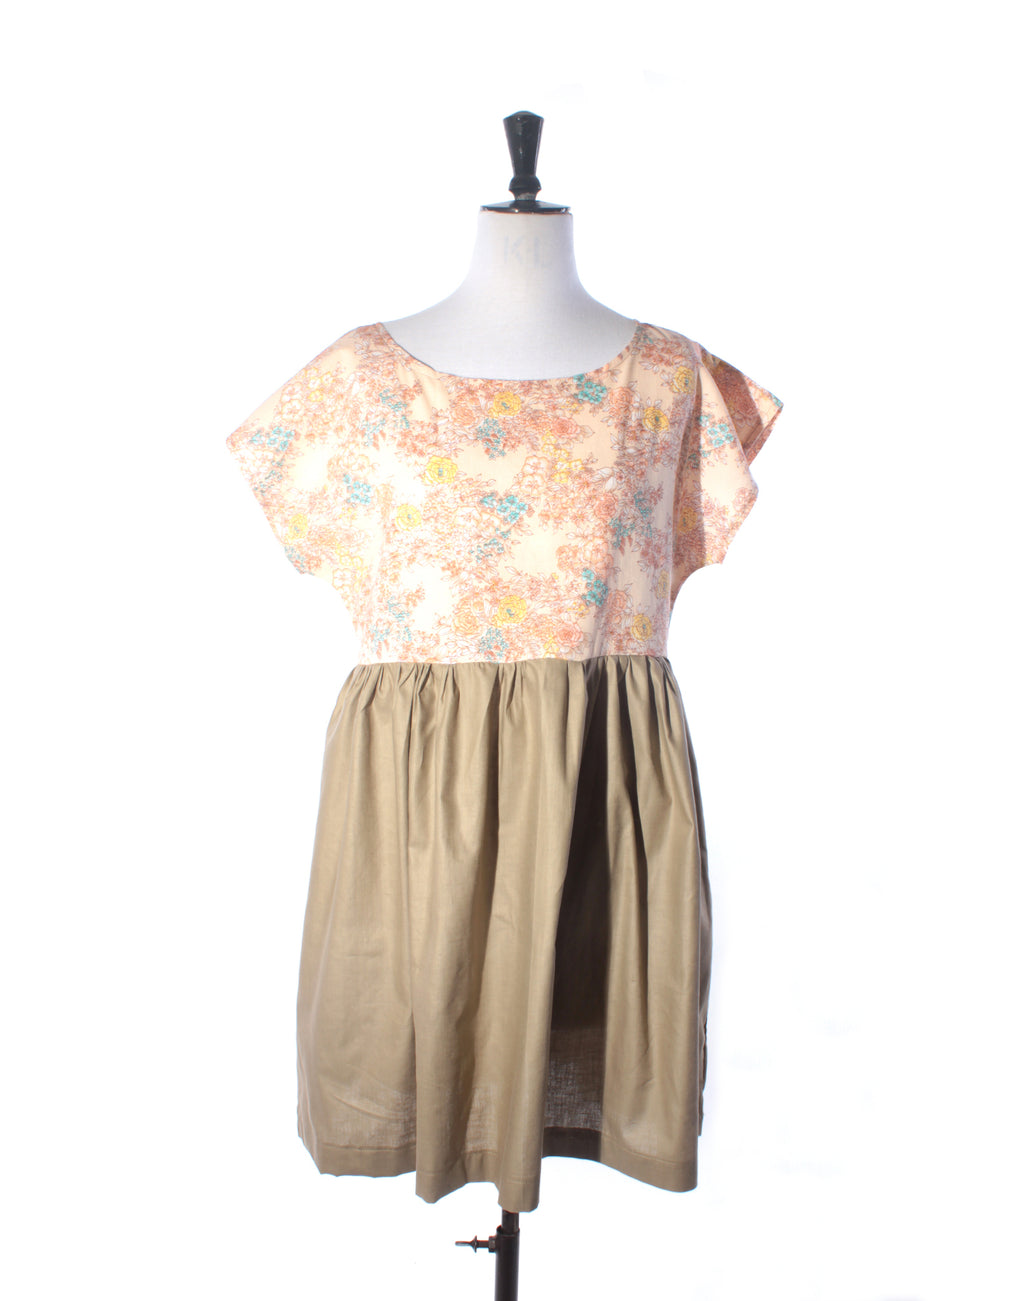 Pink Floral & Sand Cotton Collector Dress - Size M